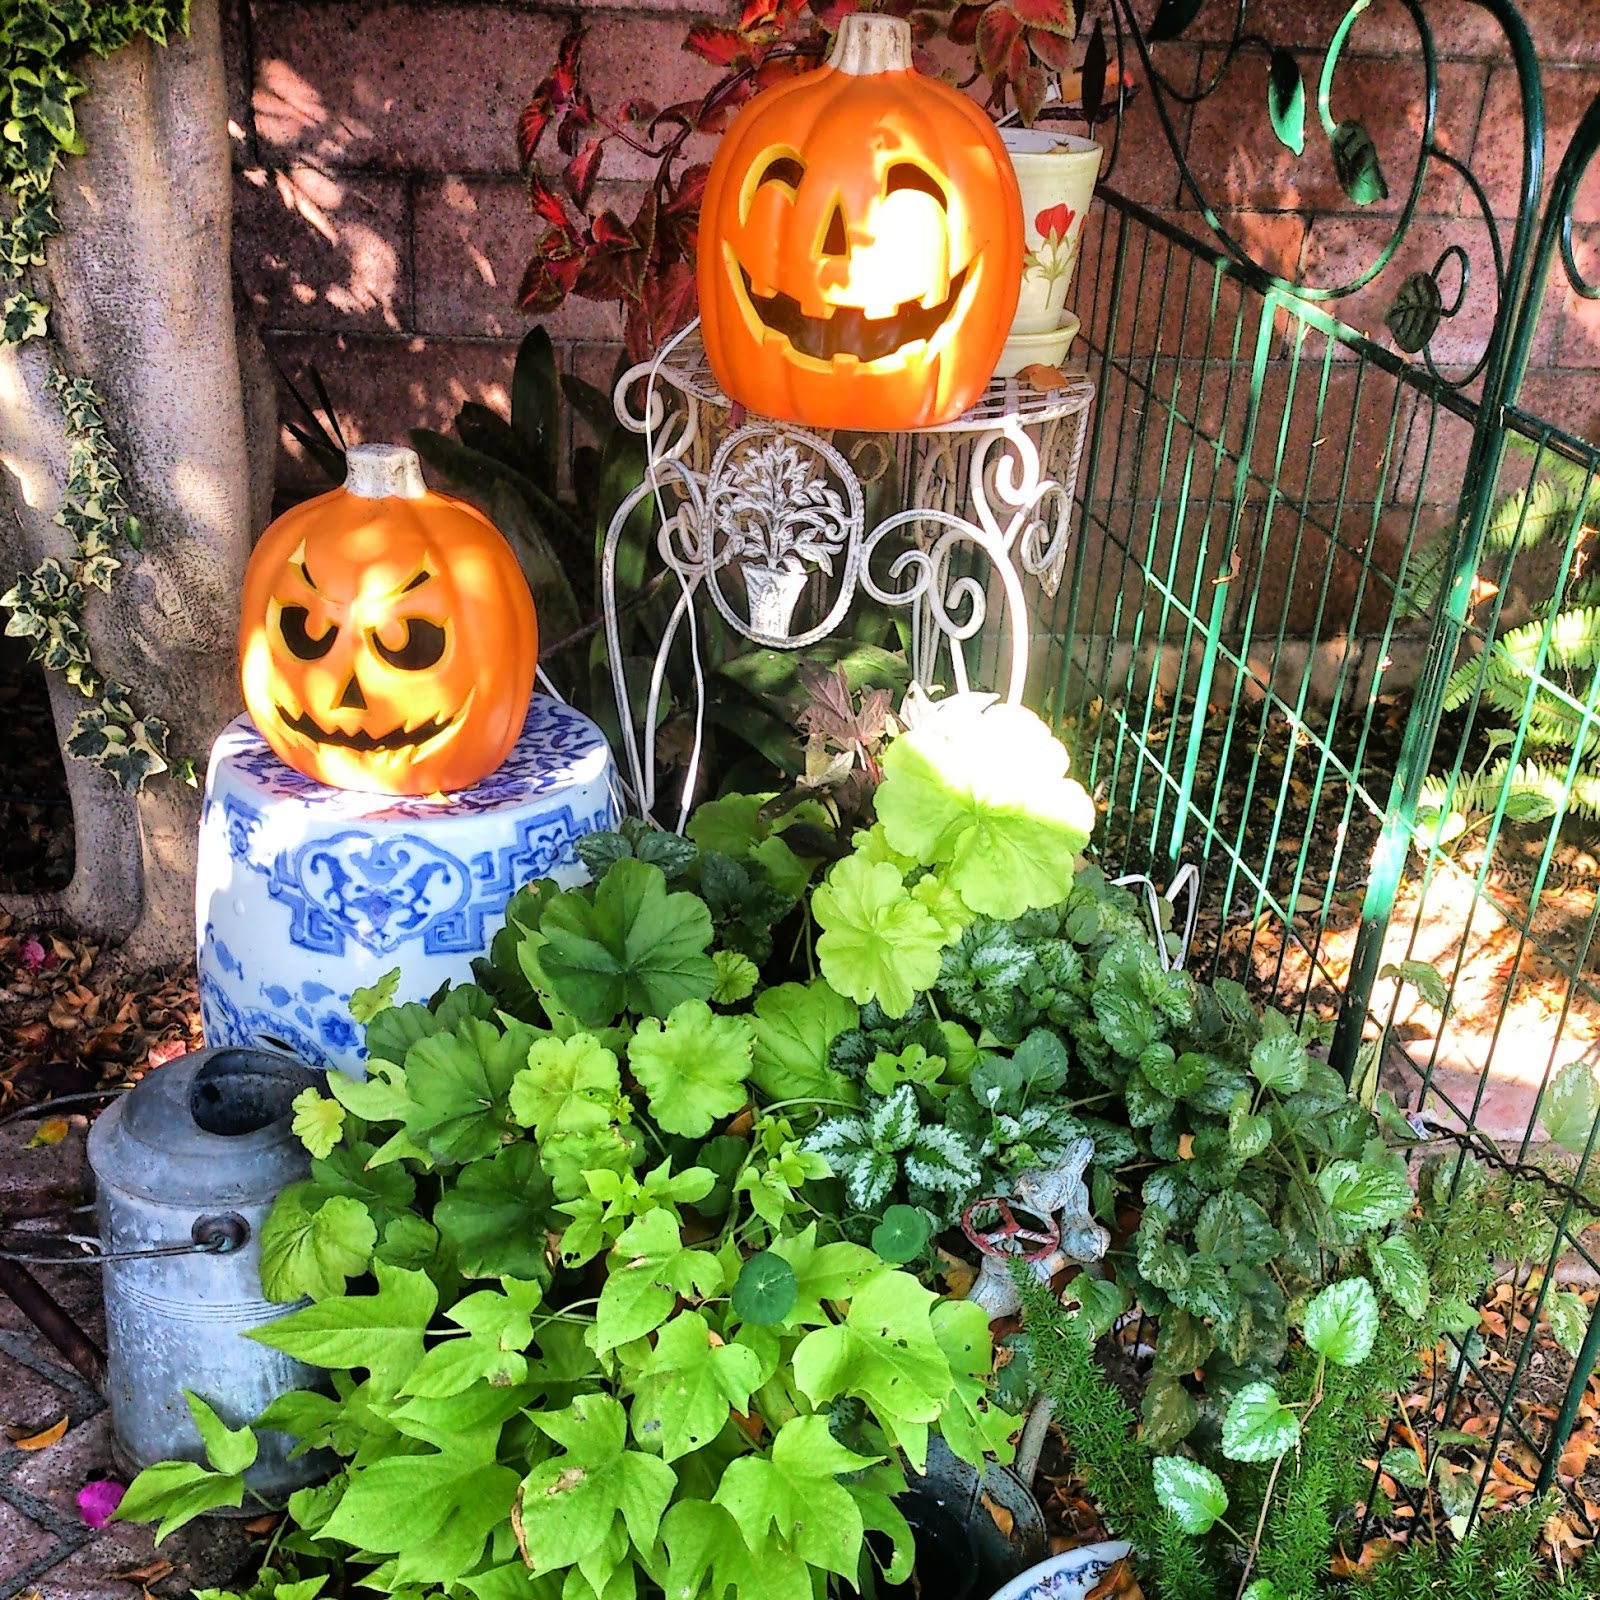 Sunny Simple Life: Pumpkins, Halloween Decor and the Garden